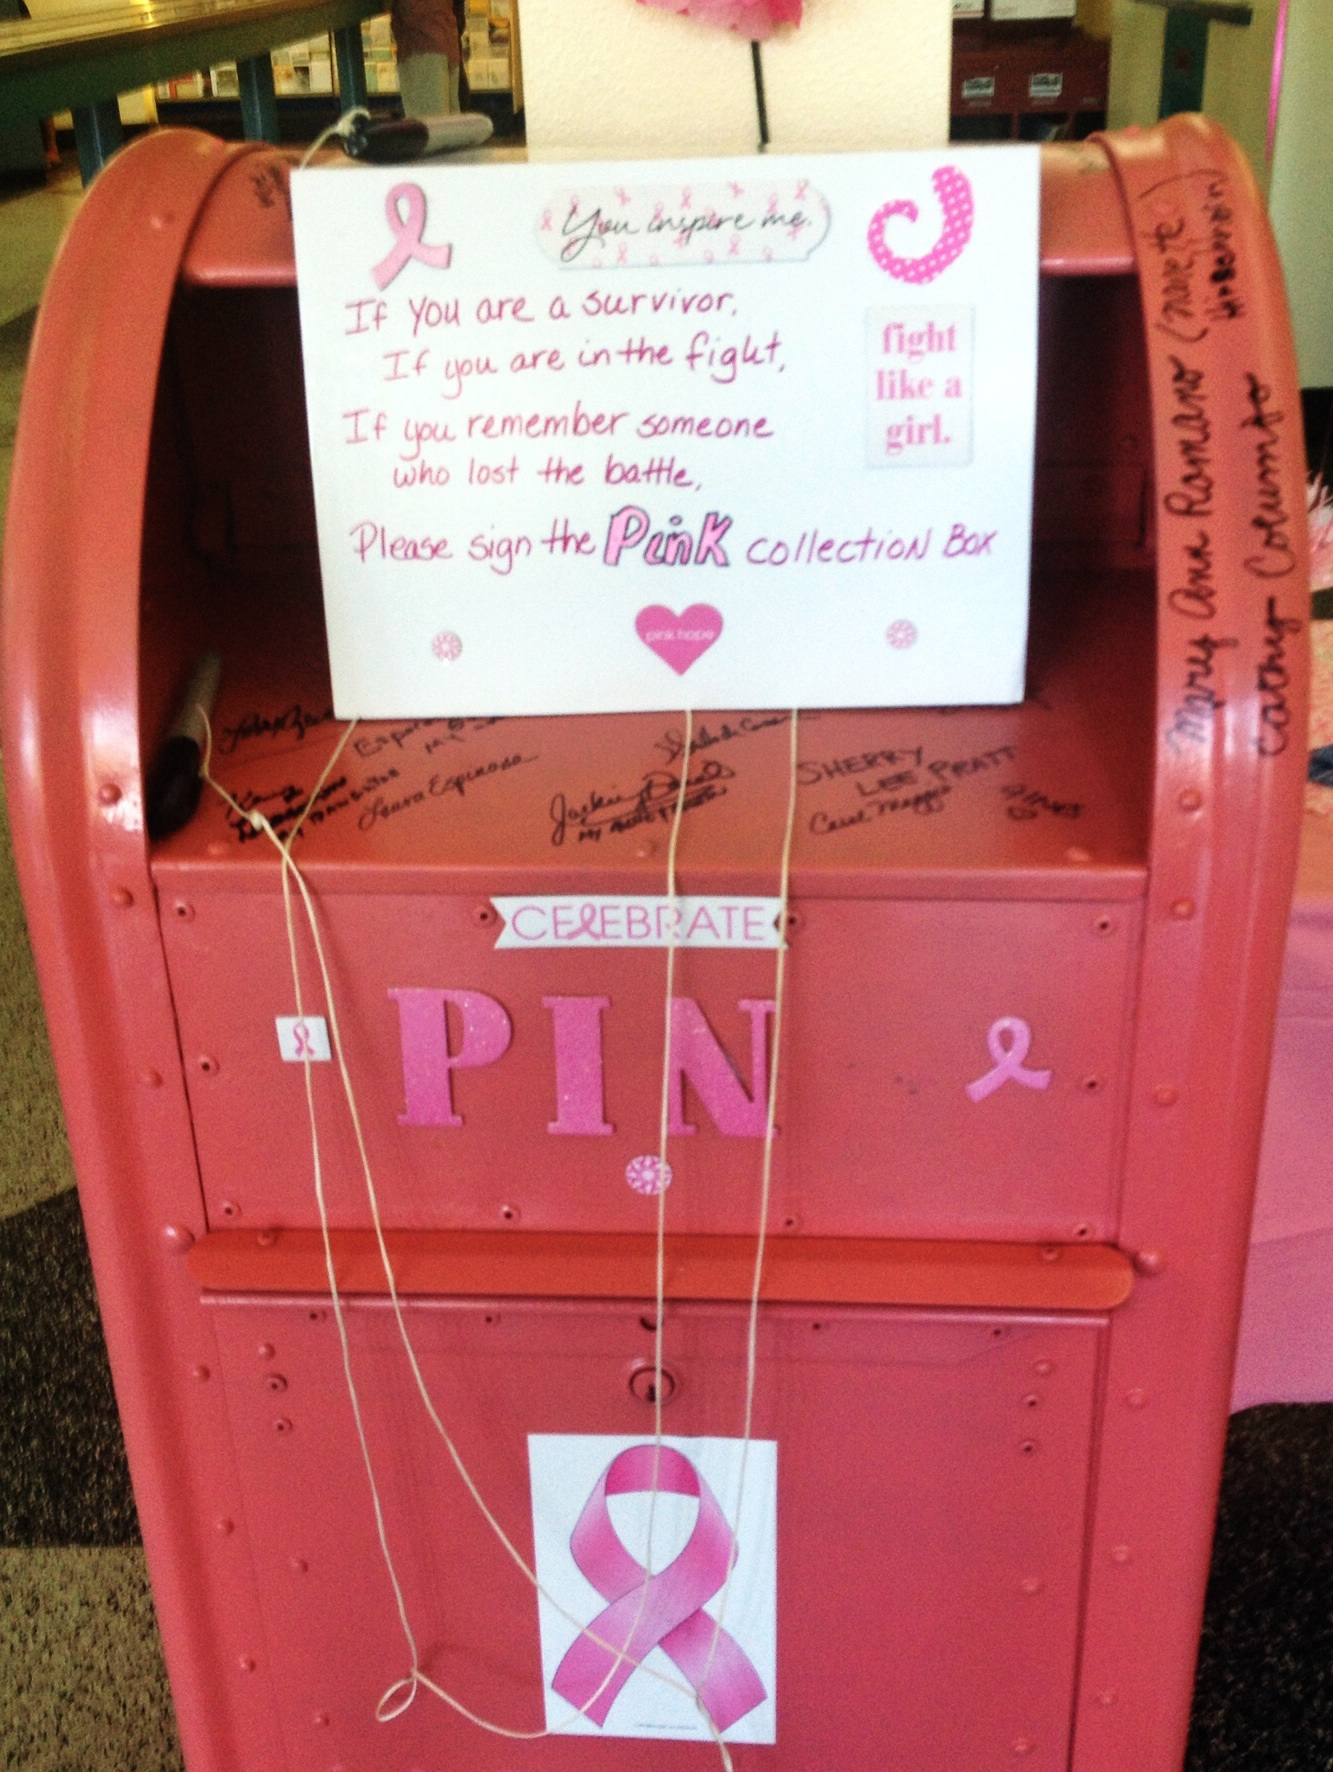 Pink Collection Box Post Office San Rafel